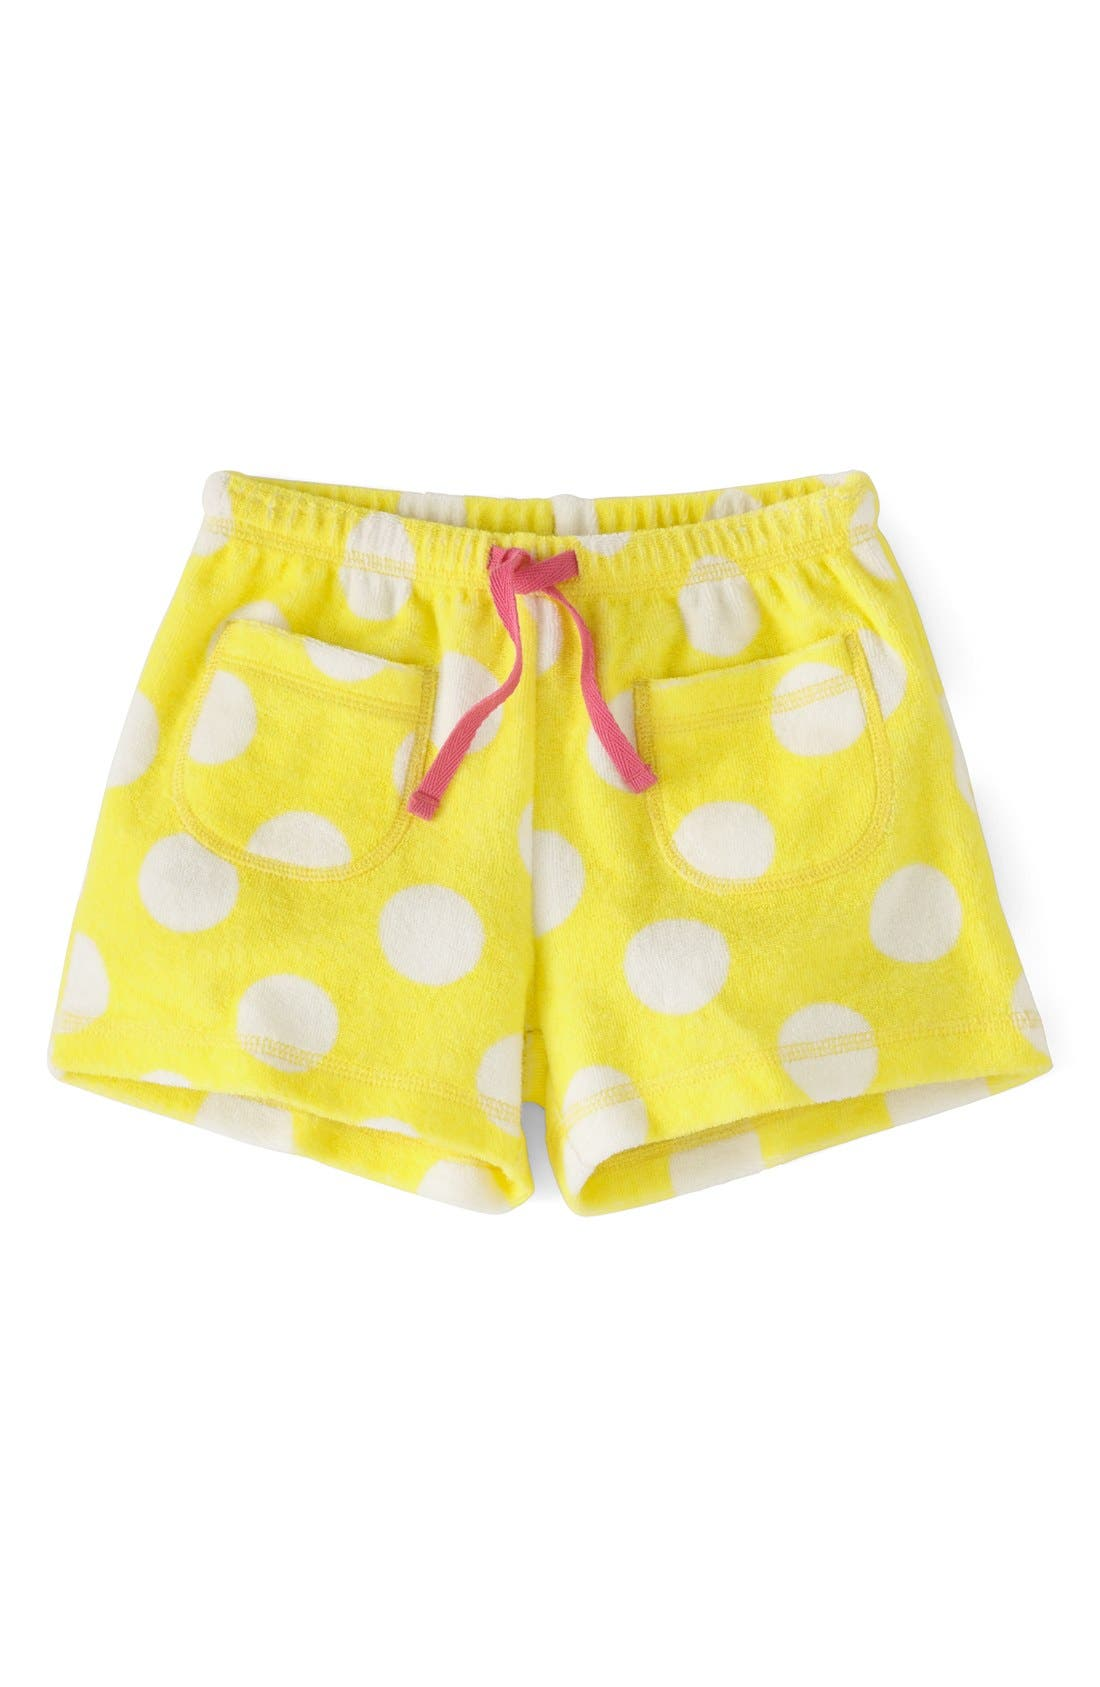 Alternate Image 1 Selected - Mini Boden 'Towelling' Shorts (Toddler Girls, Little Girls & Big Girls)(Online Only)